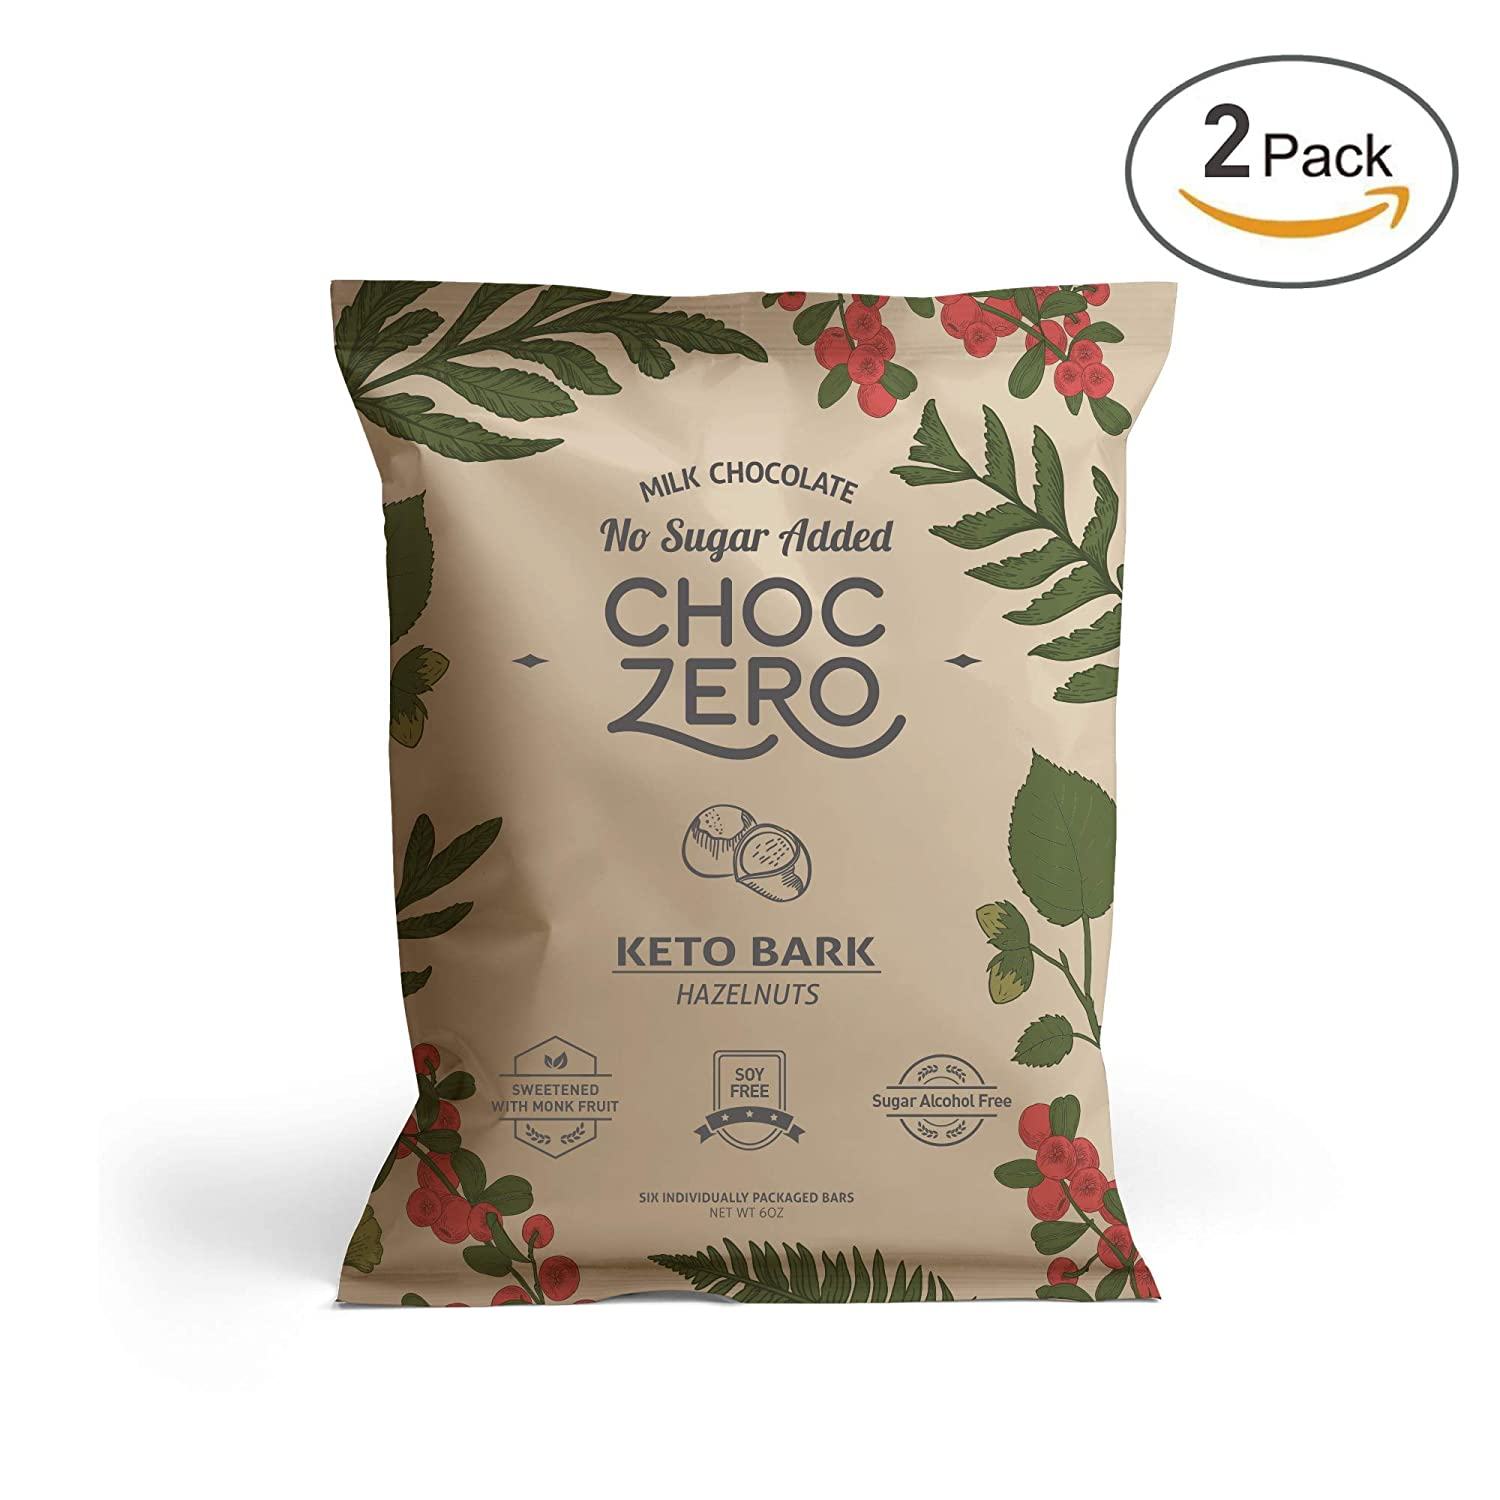 ChocZero's Keto Bark, Milk Chocolate Hazelnuts,